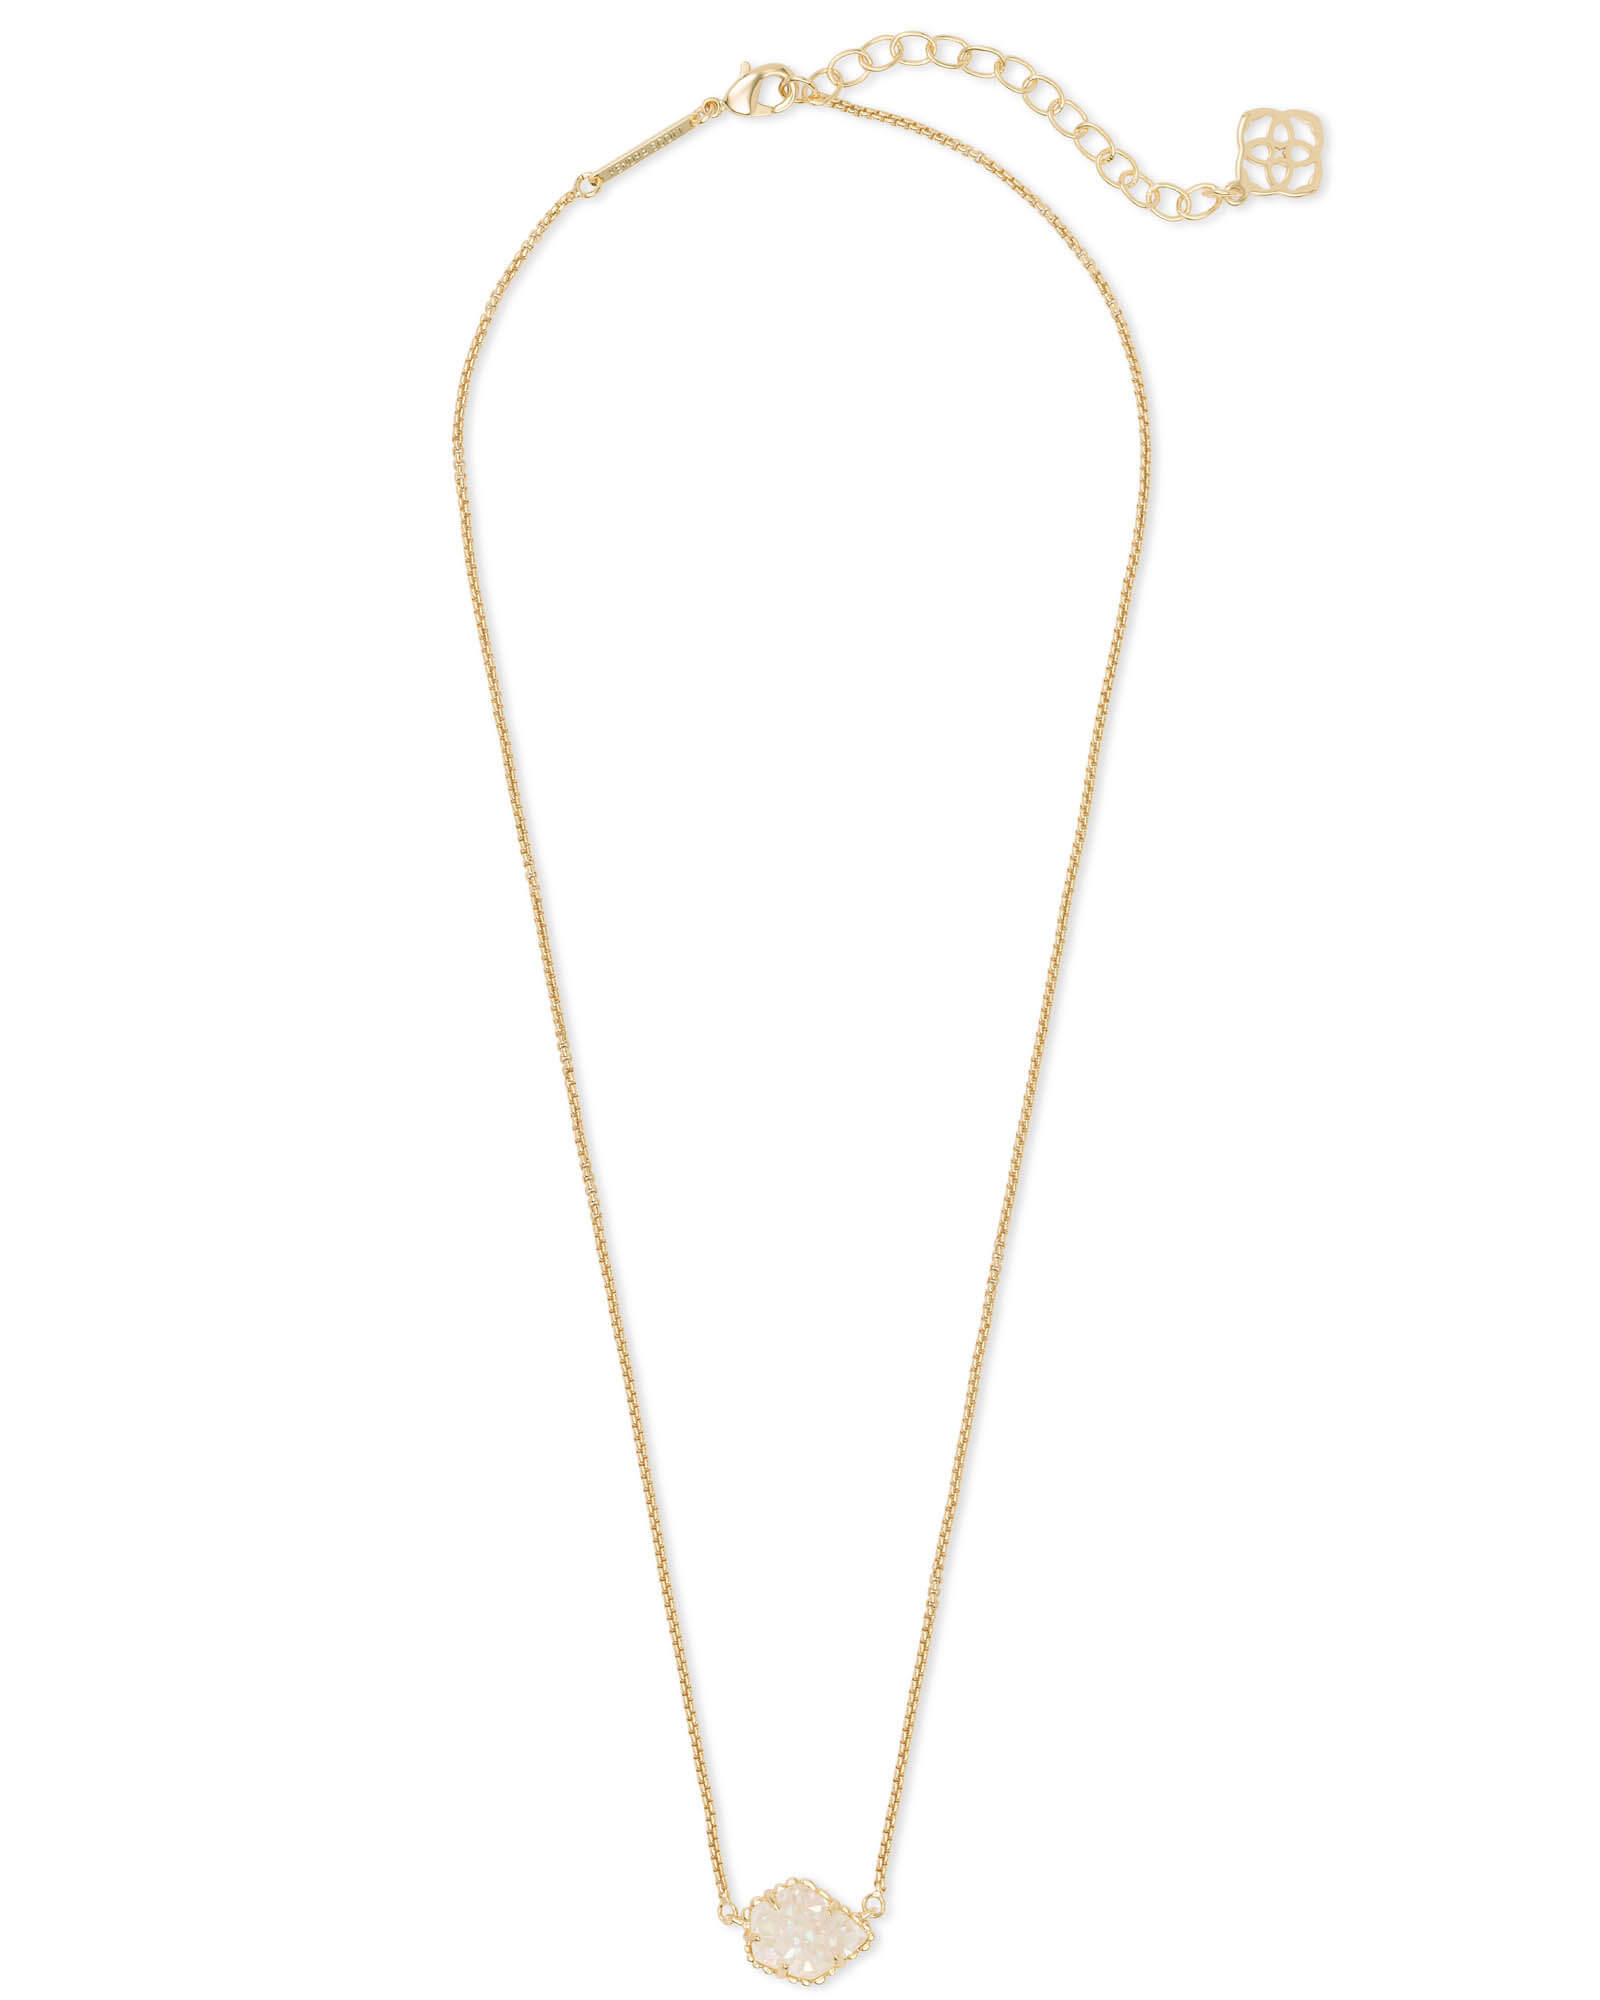 Tess Gold Pendant Necklace in Iridescent Drusy